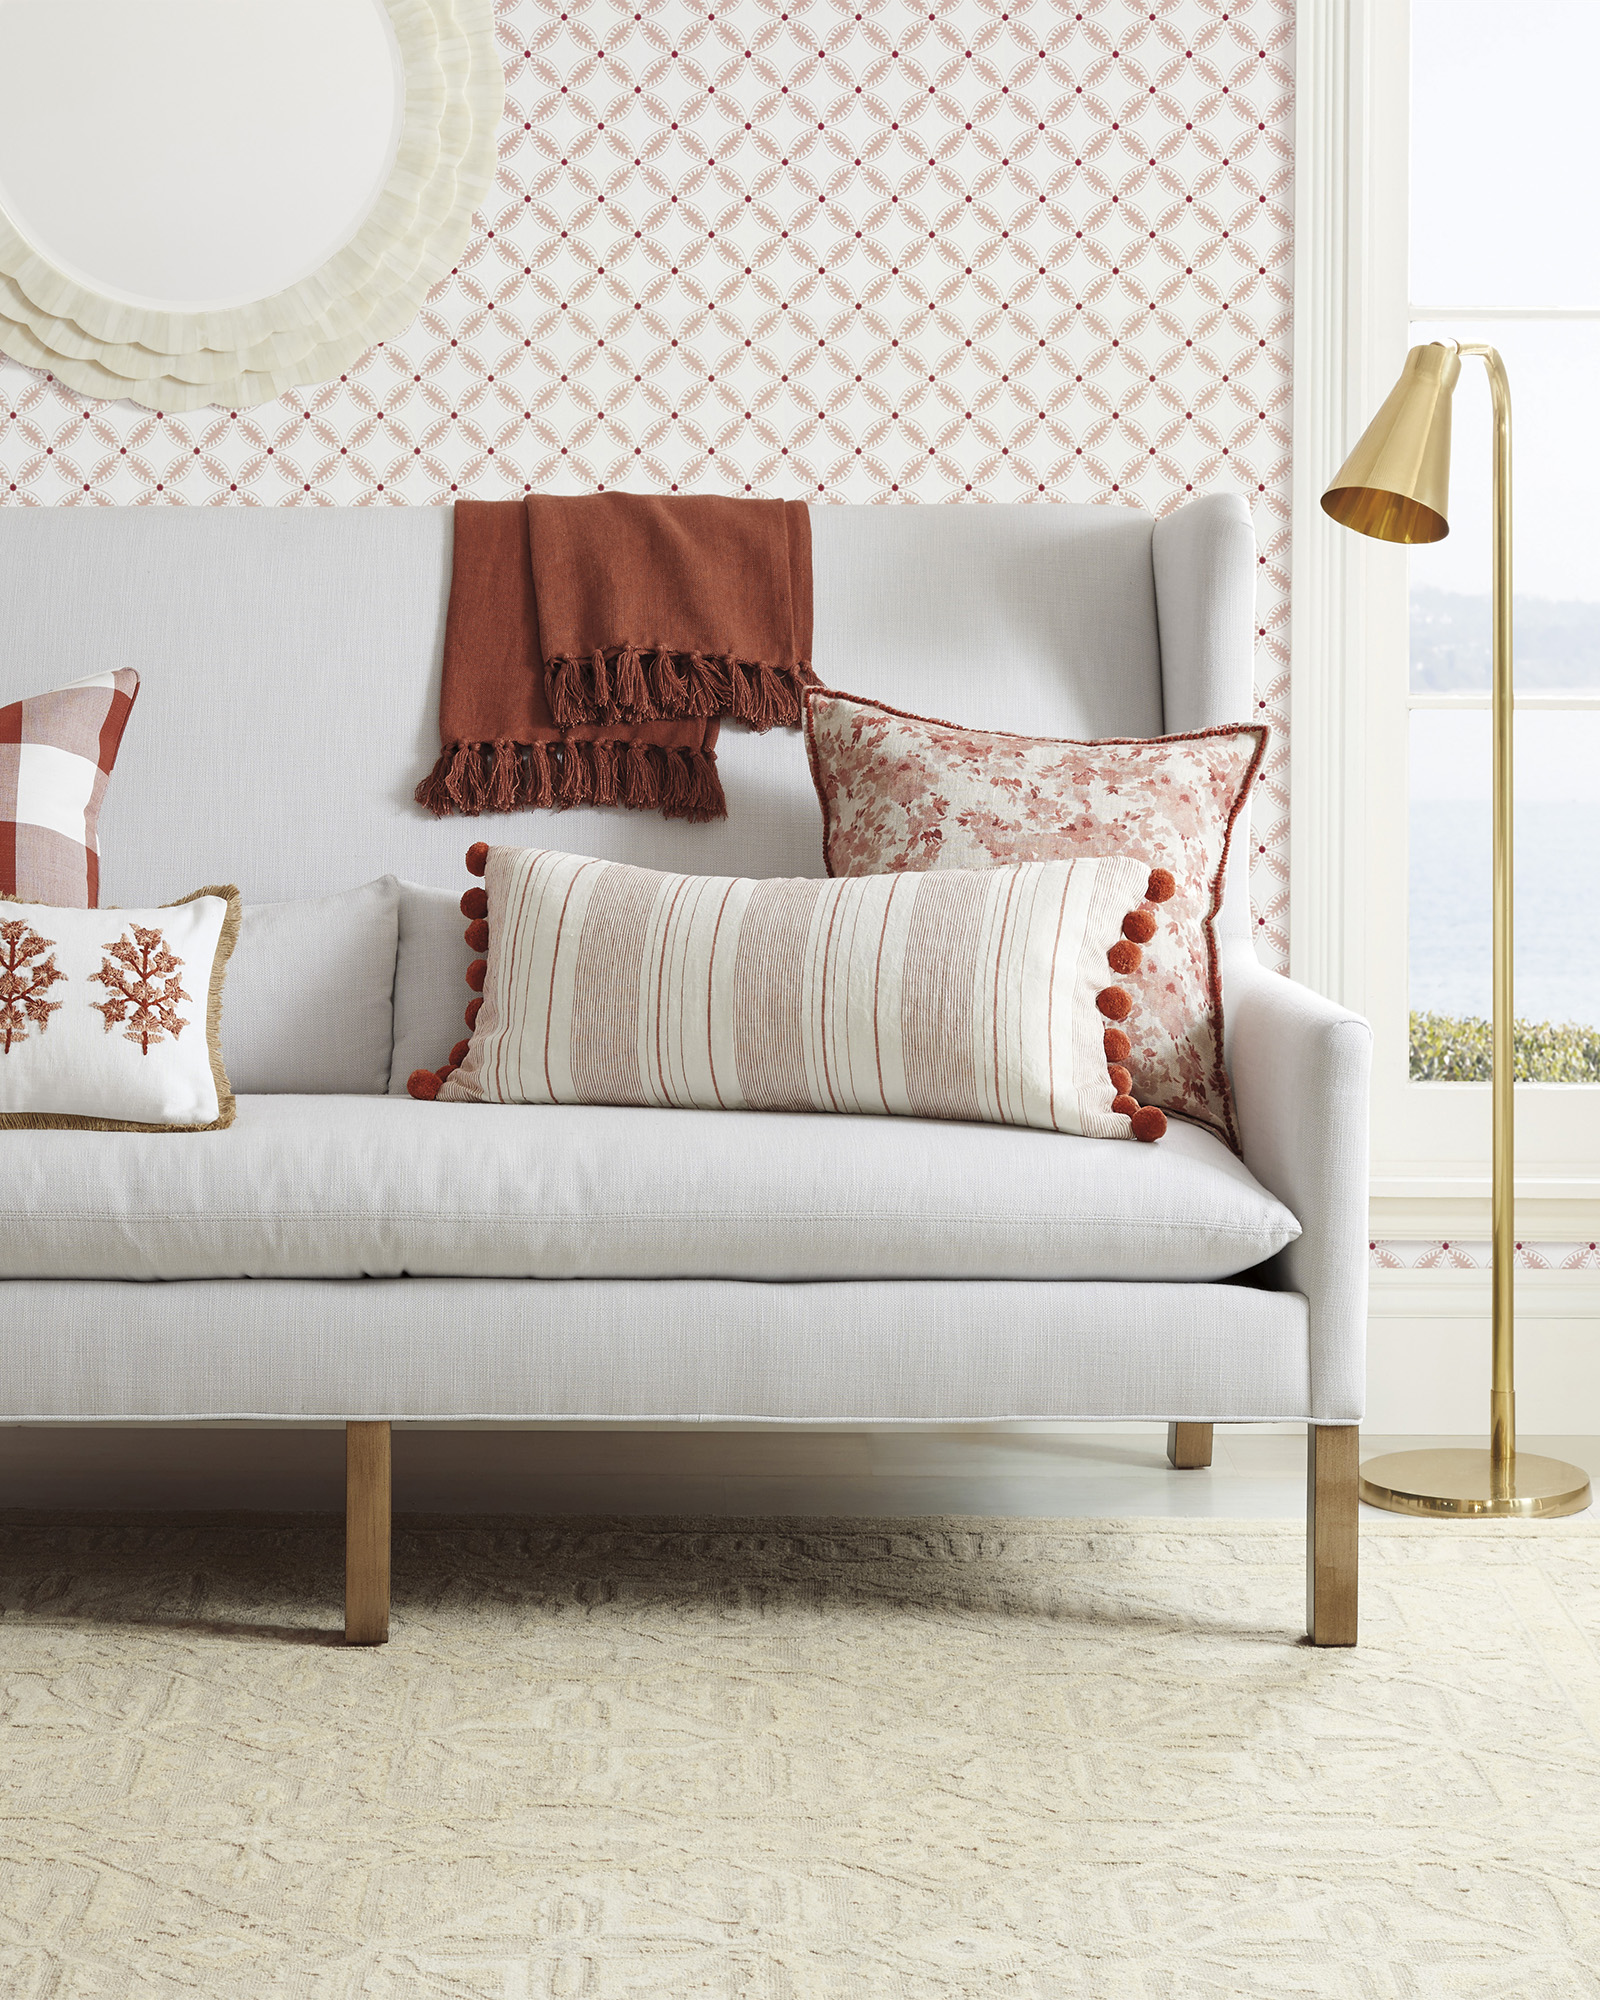 small-white-sofa-with-high-wing-back-classic-interior-design-for-small-floor-plan-white-upholstery-72-inch-design